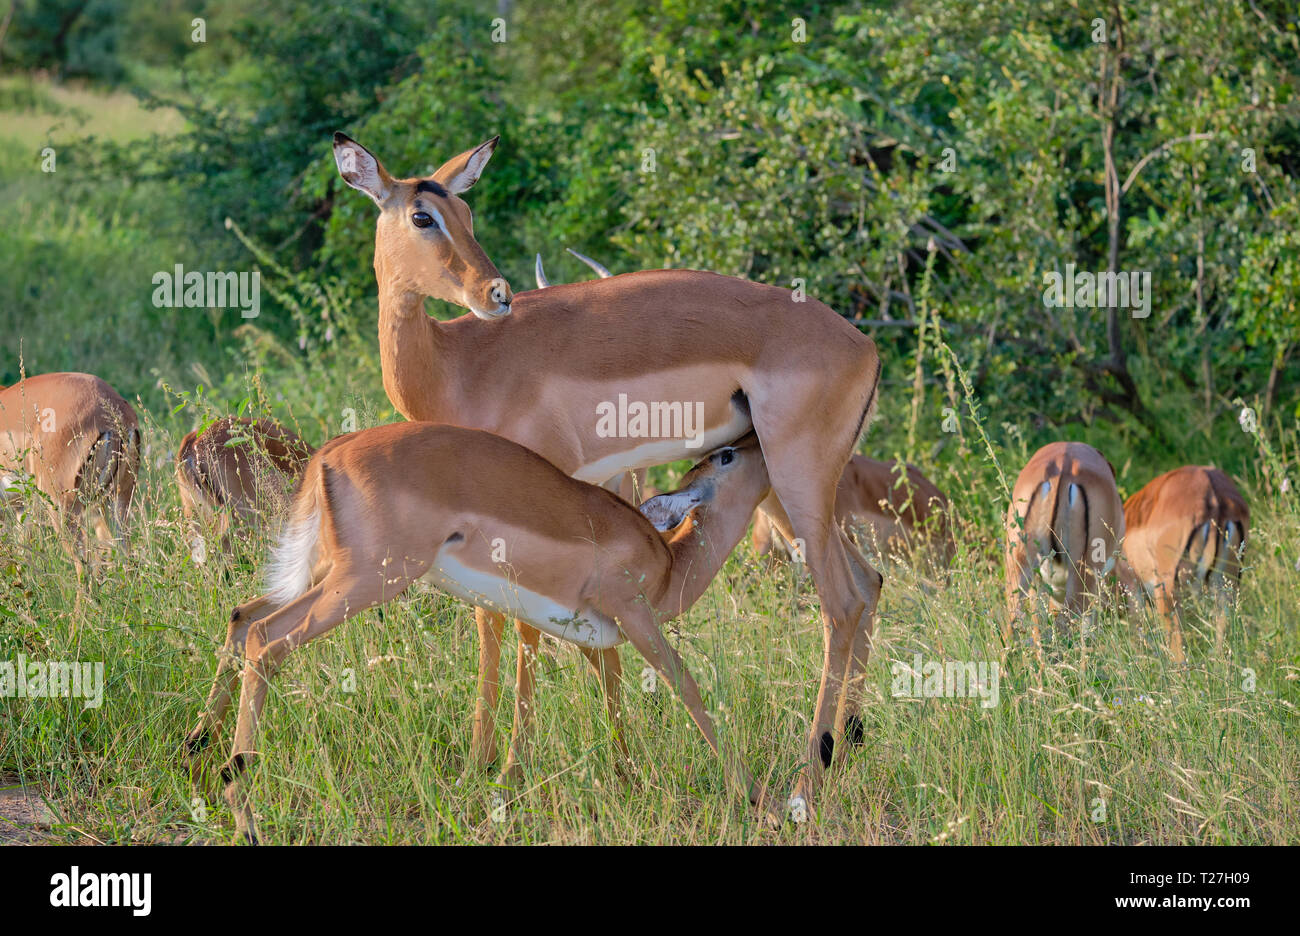 Baby impala feeding off it's mother in grassing green surrounding.  Other females seen in background Stock Photo